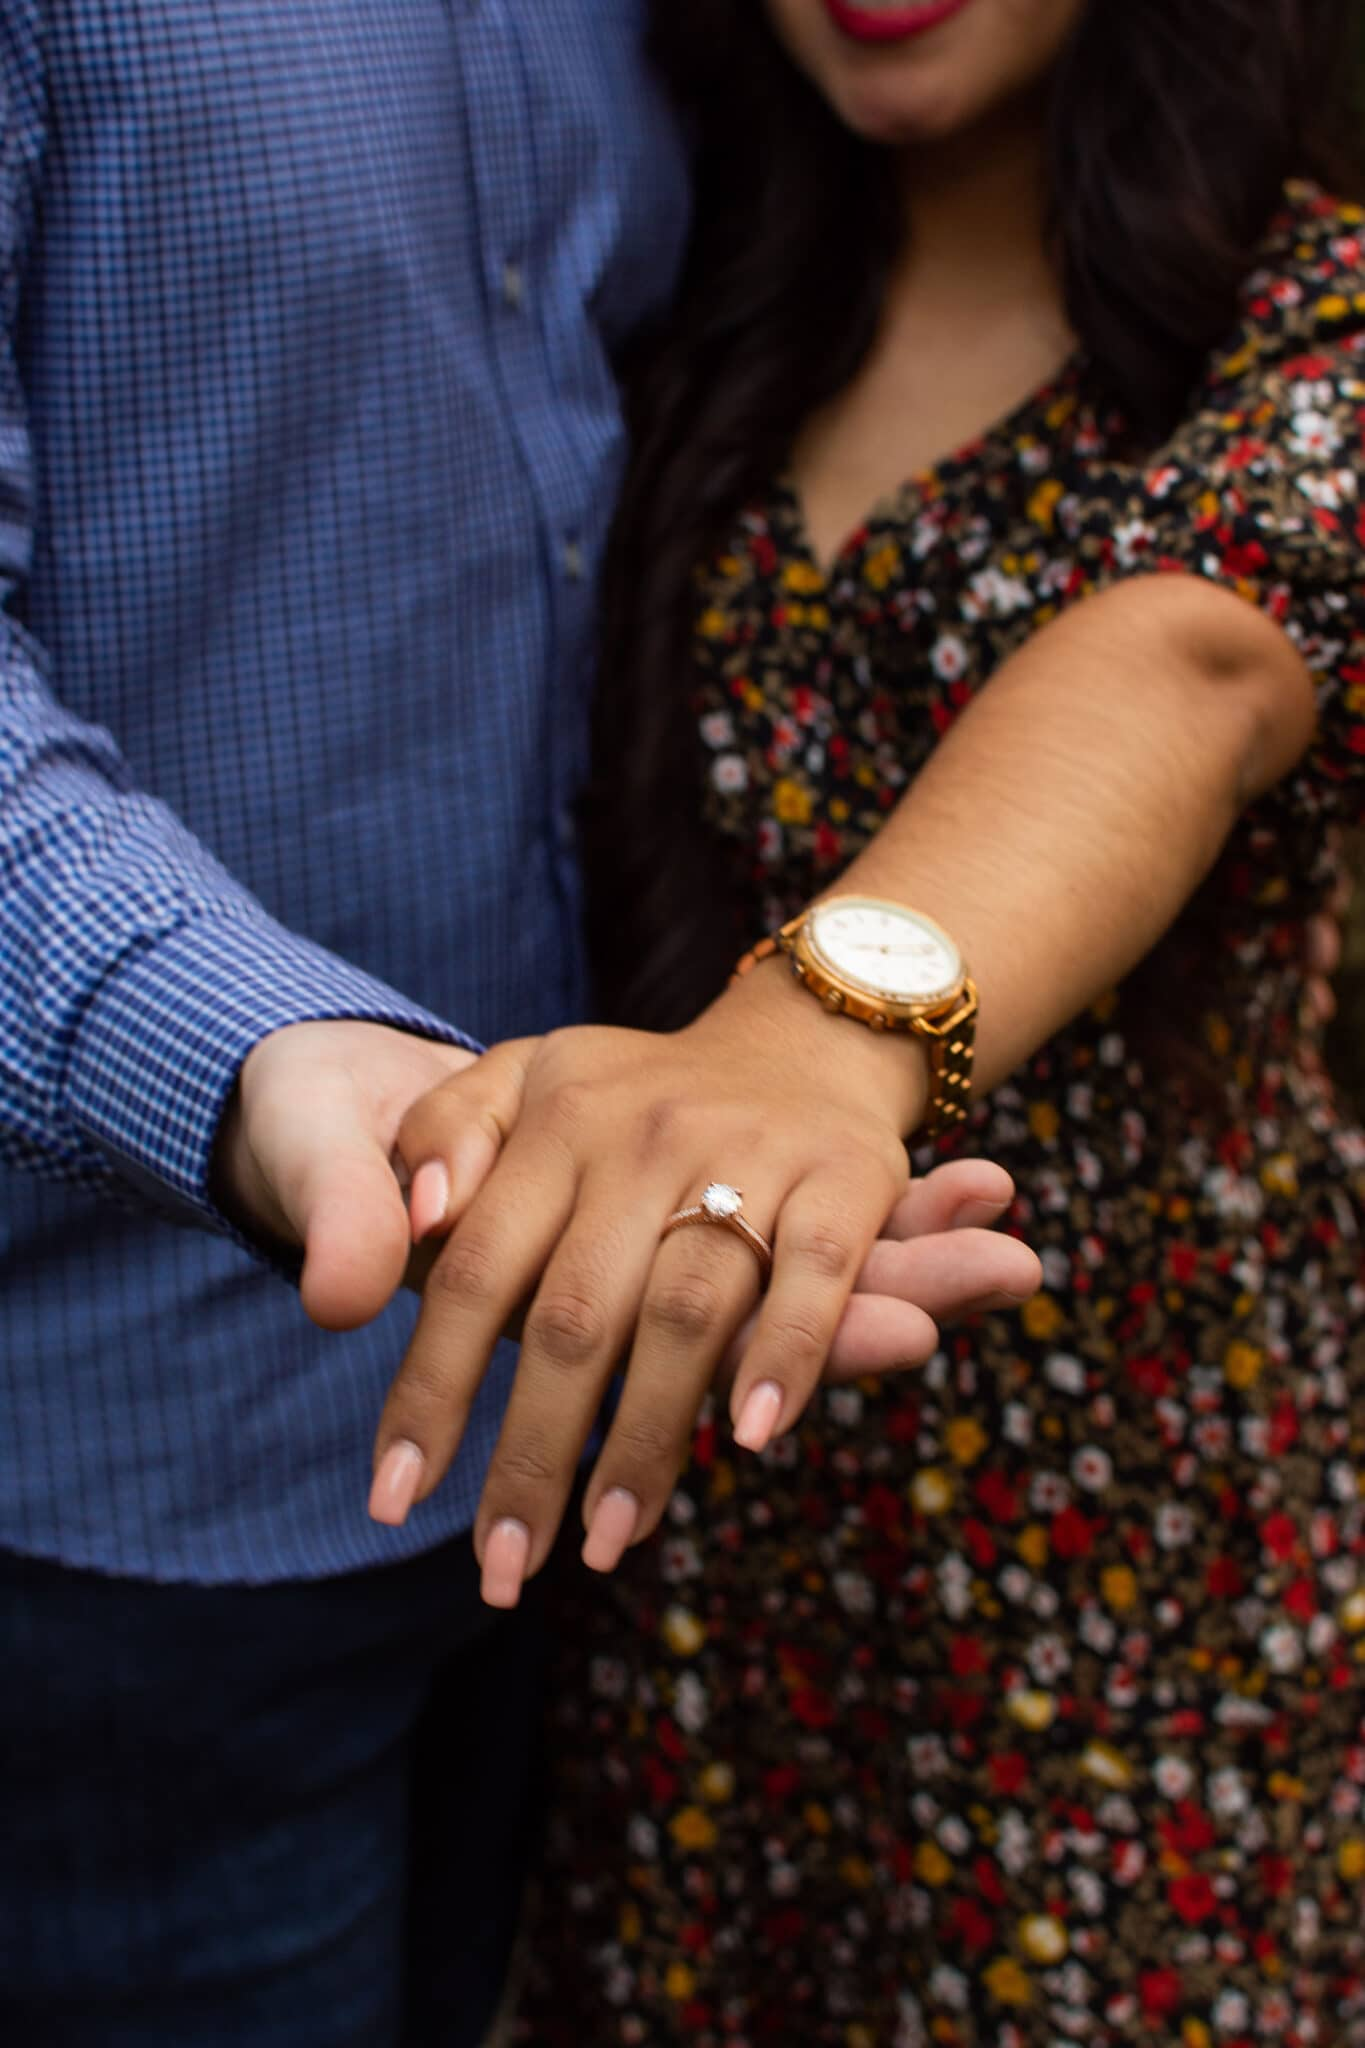 engaged couple stands together and man holds out fiances hand with new engagement ring on it and pink nails